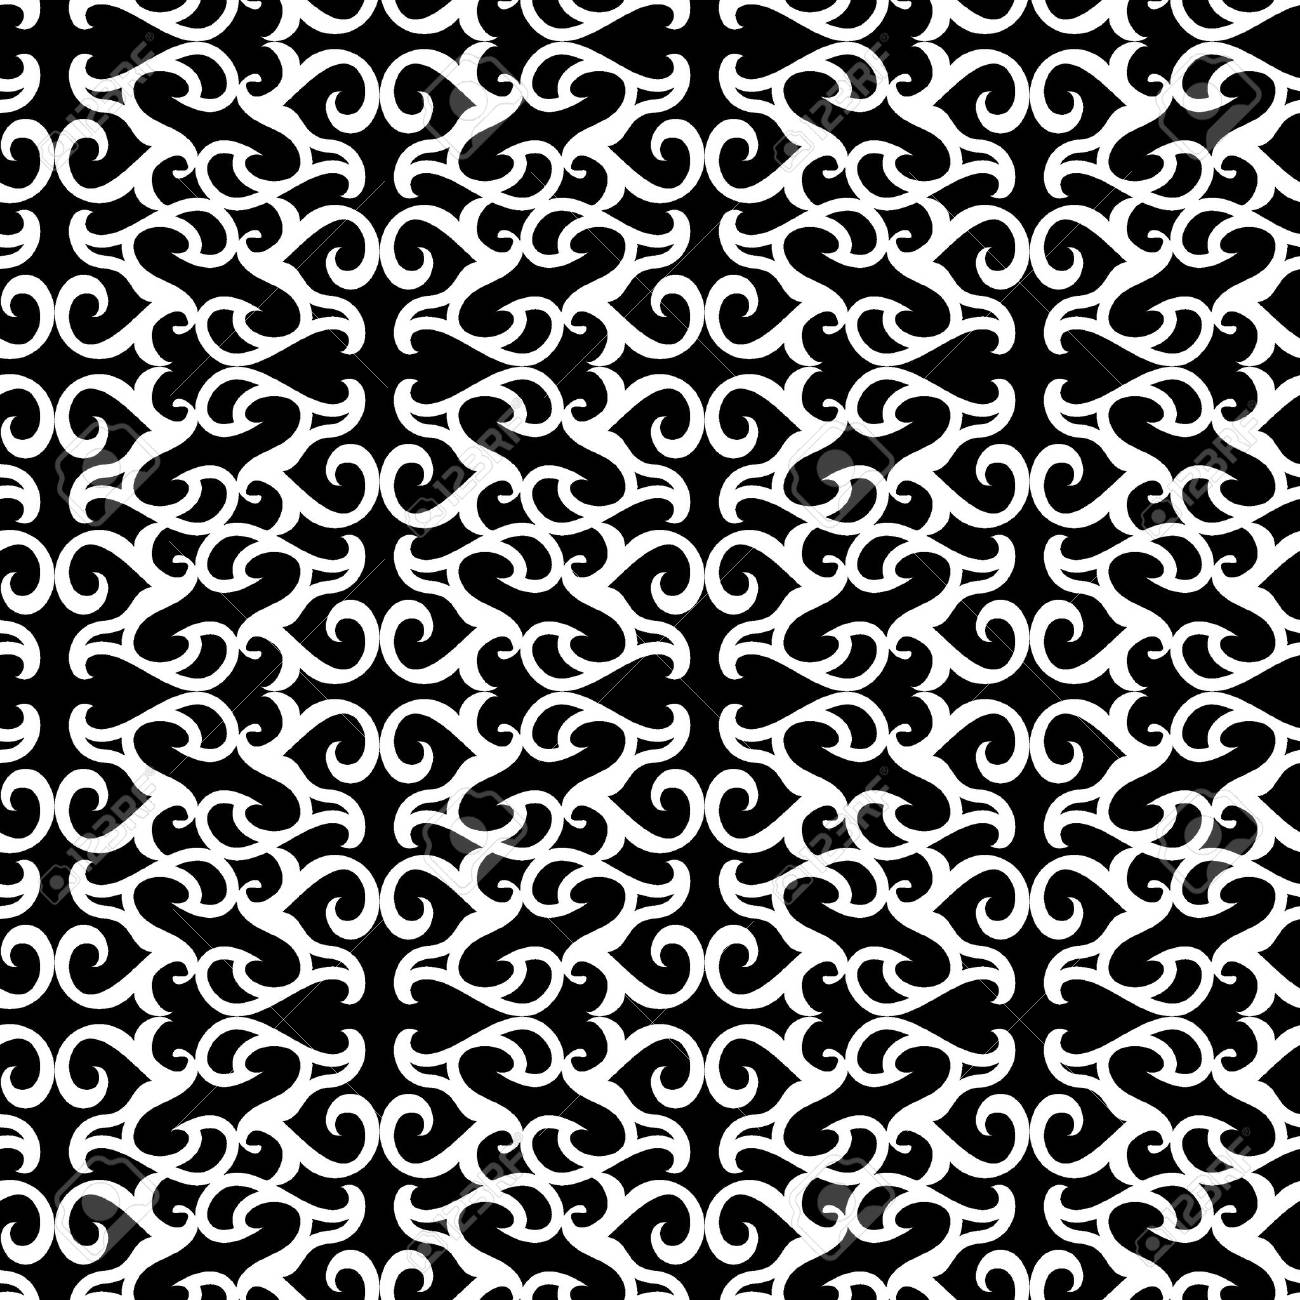 Seamless black and white ornament vector pattern Stock Vector - 2983180